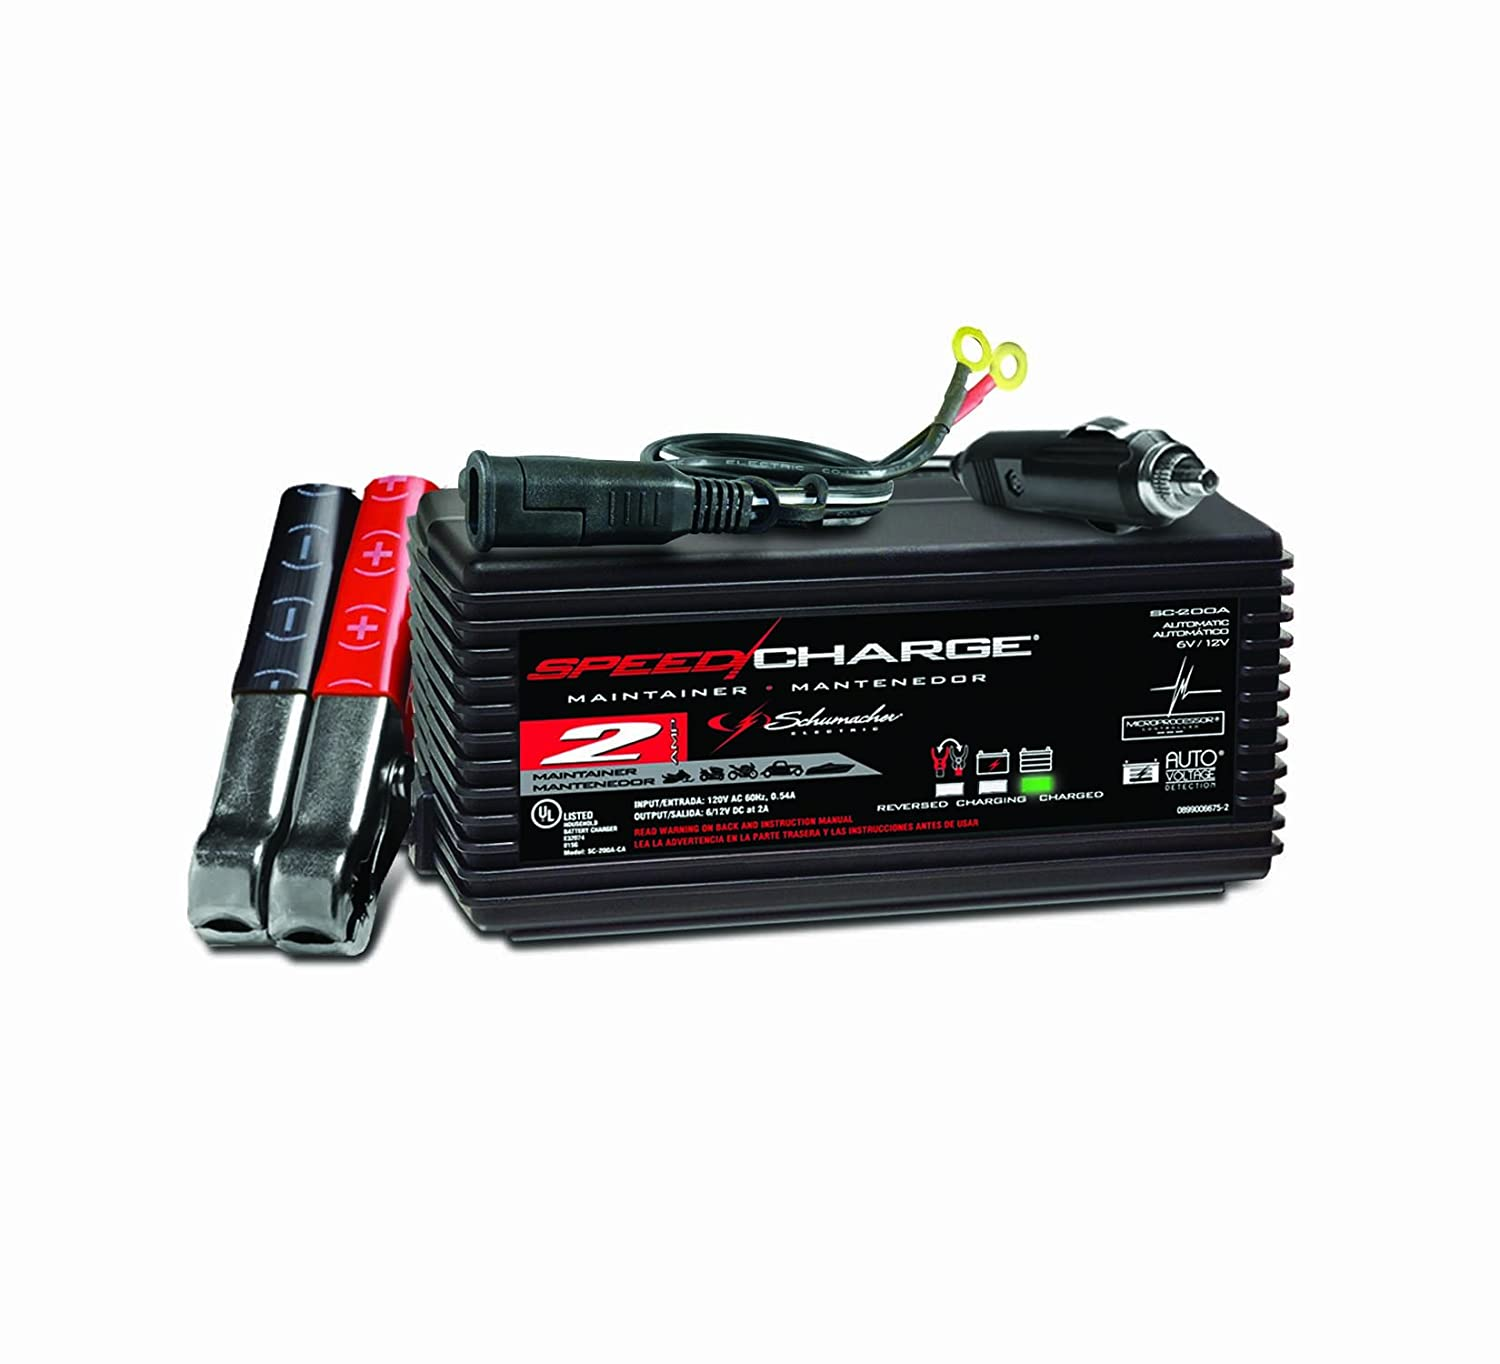 Schumacher SC-200A Speedcharge 2 Amp Battery Maintainer